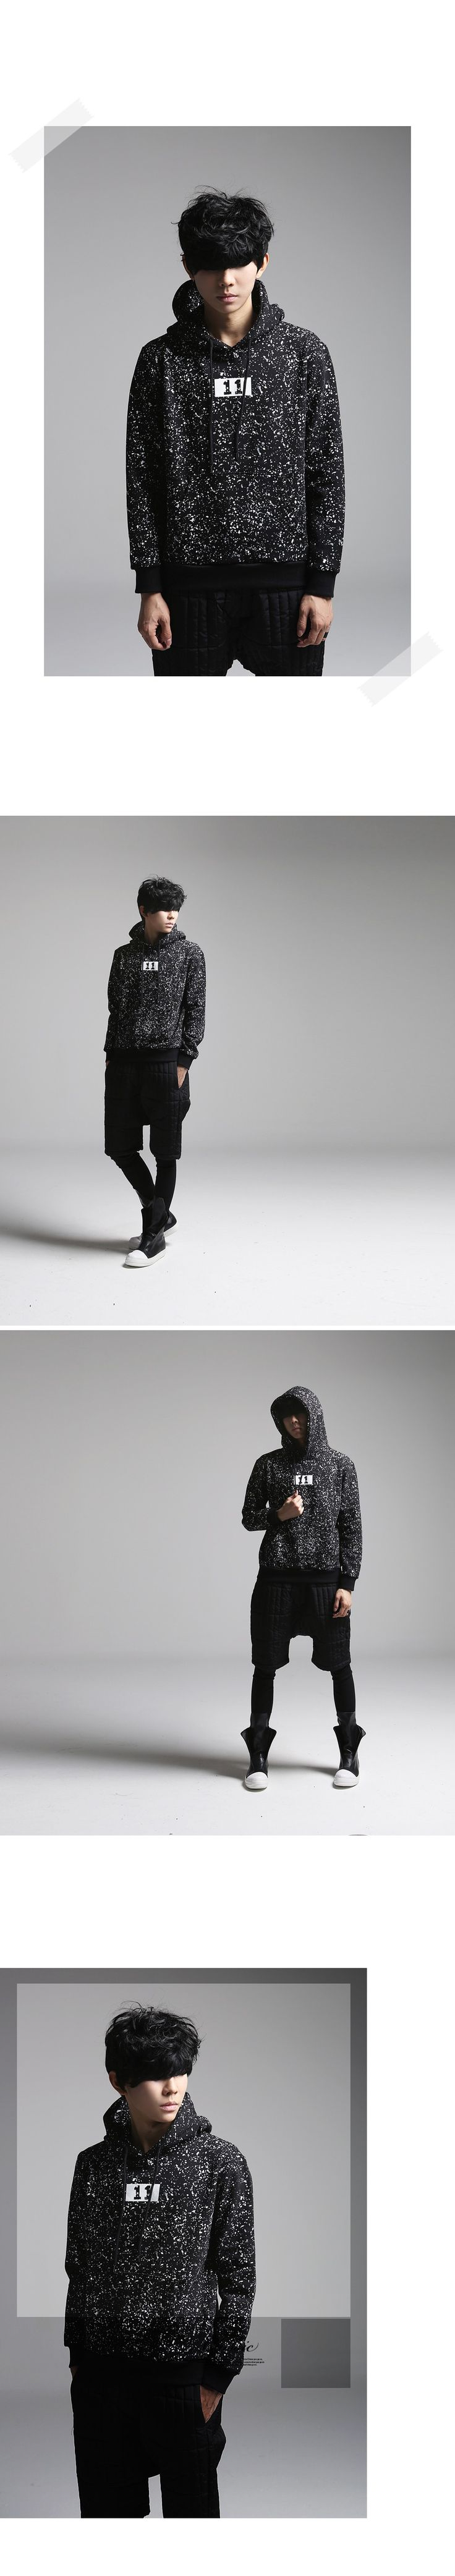 K-POP Men's Fashion Style Store [TOMSYTLE]  11 Dot panic Hood / Size : FREE /  Price : 54.35 USD #dailylook #dailyfashion #casuallook #tops #T #TEE #Tshirts #hoodT #unique #TOMSTYLE #OOTD  http://en.tomstyle.net/